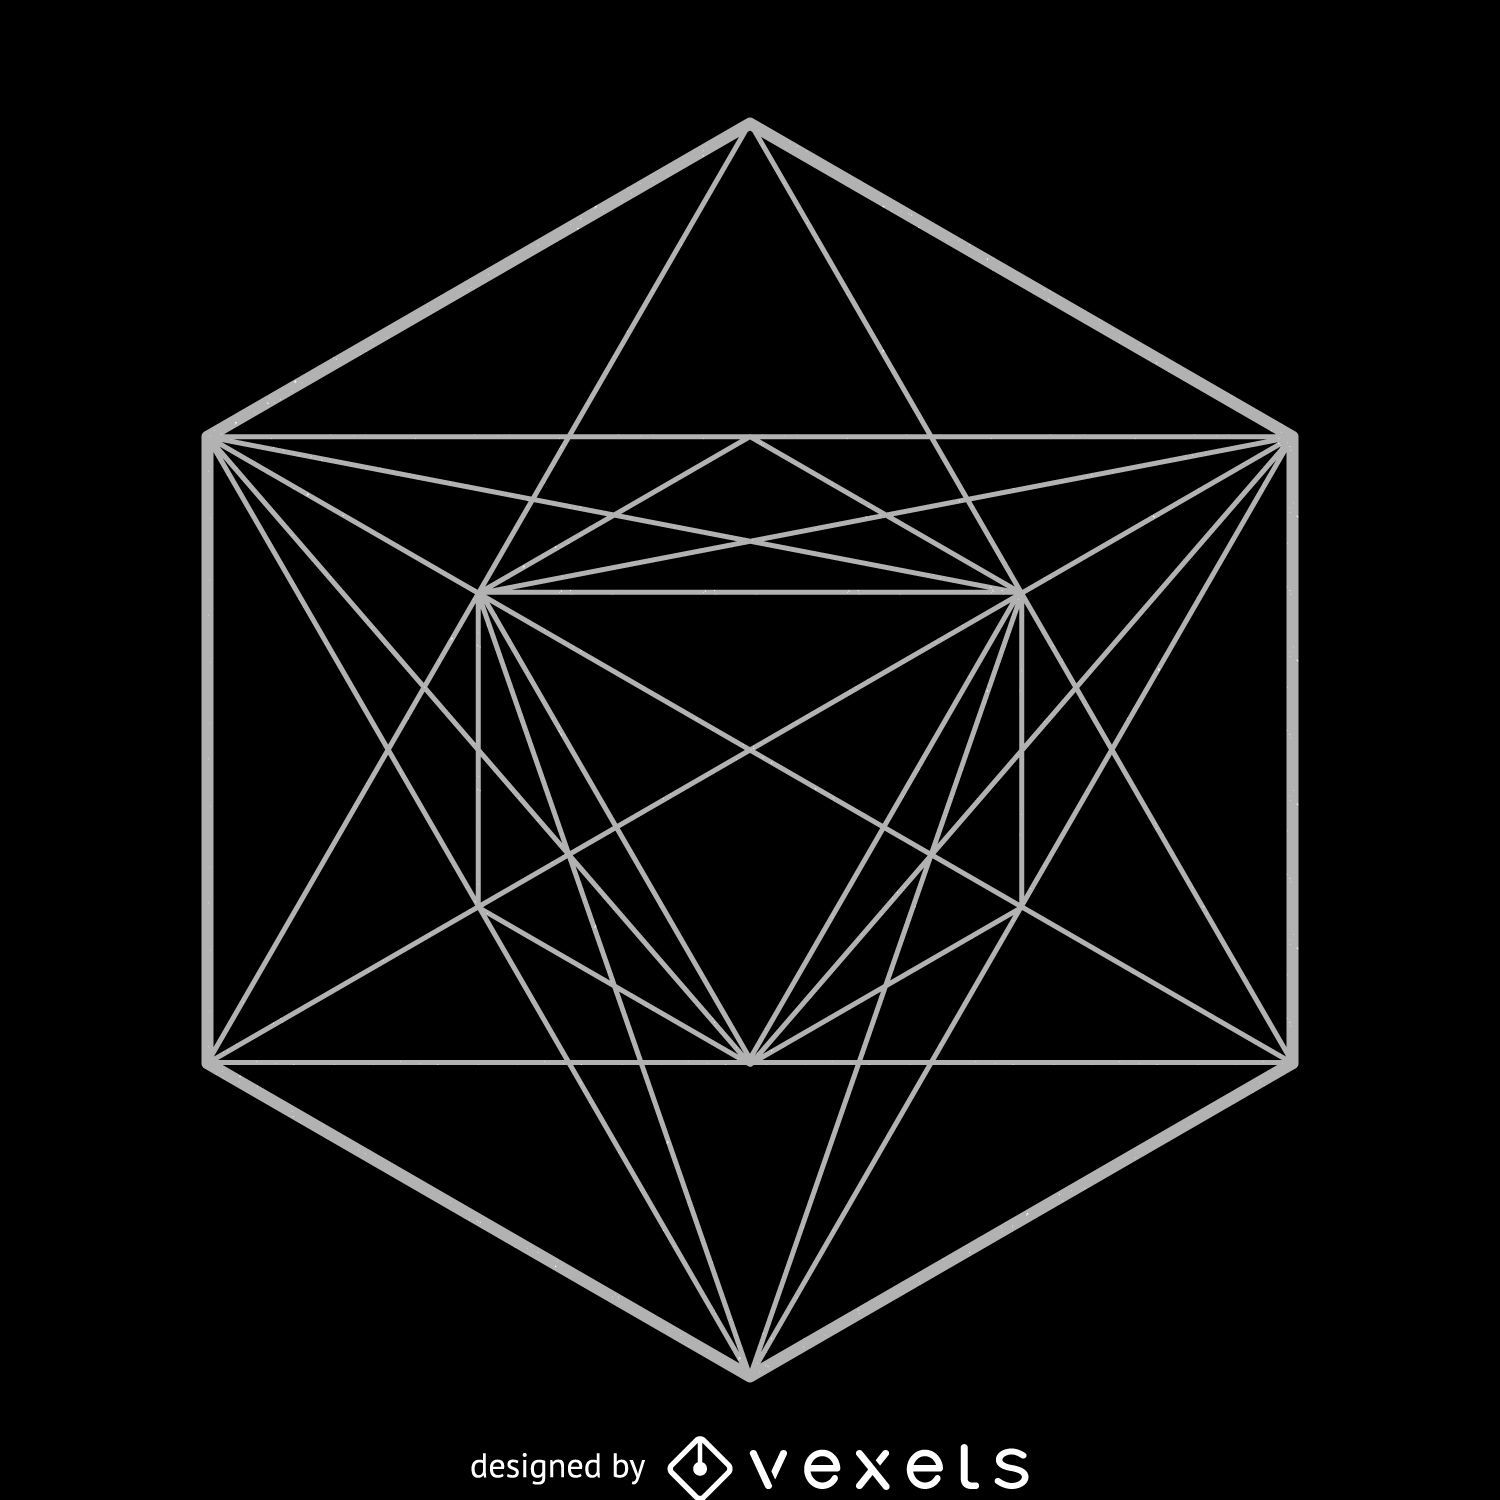 Geometric Line Design : Symmetrical sacred geometry design vector download